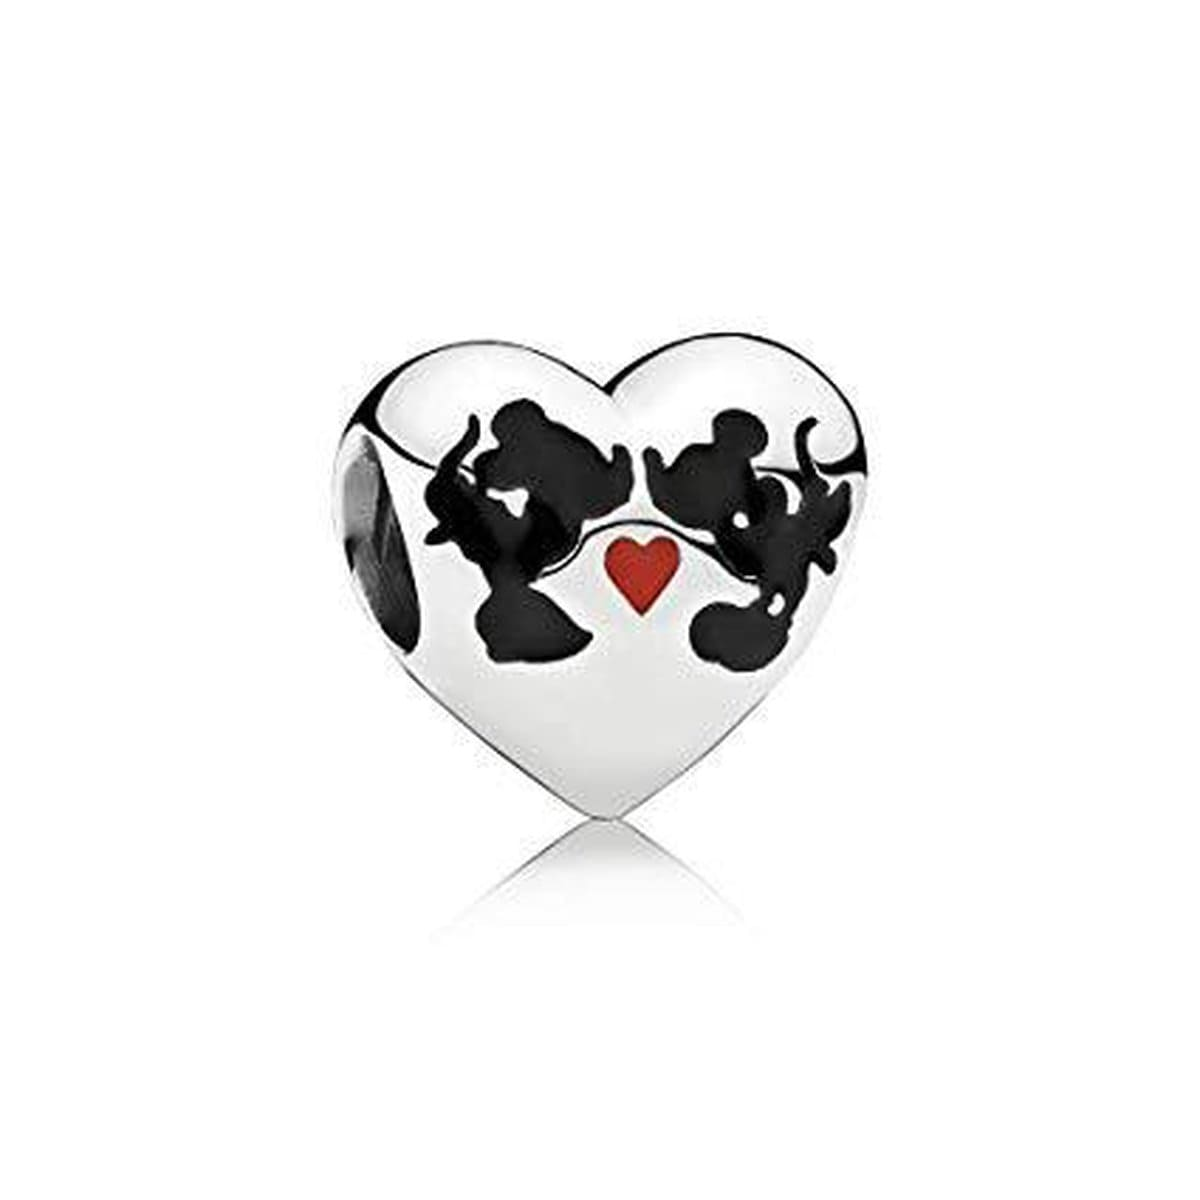 Disney, Minnie & Mickey Kiss Charm - 791443ENMX-Pandora-Renee Taylor Gallery